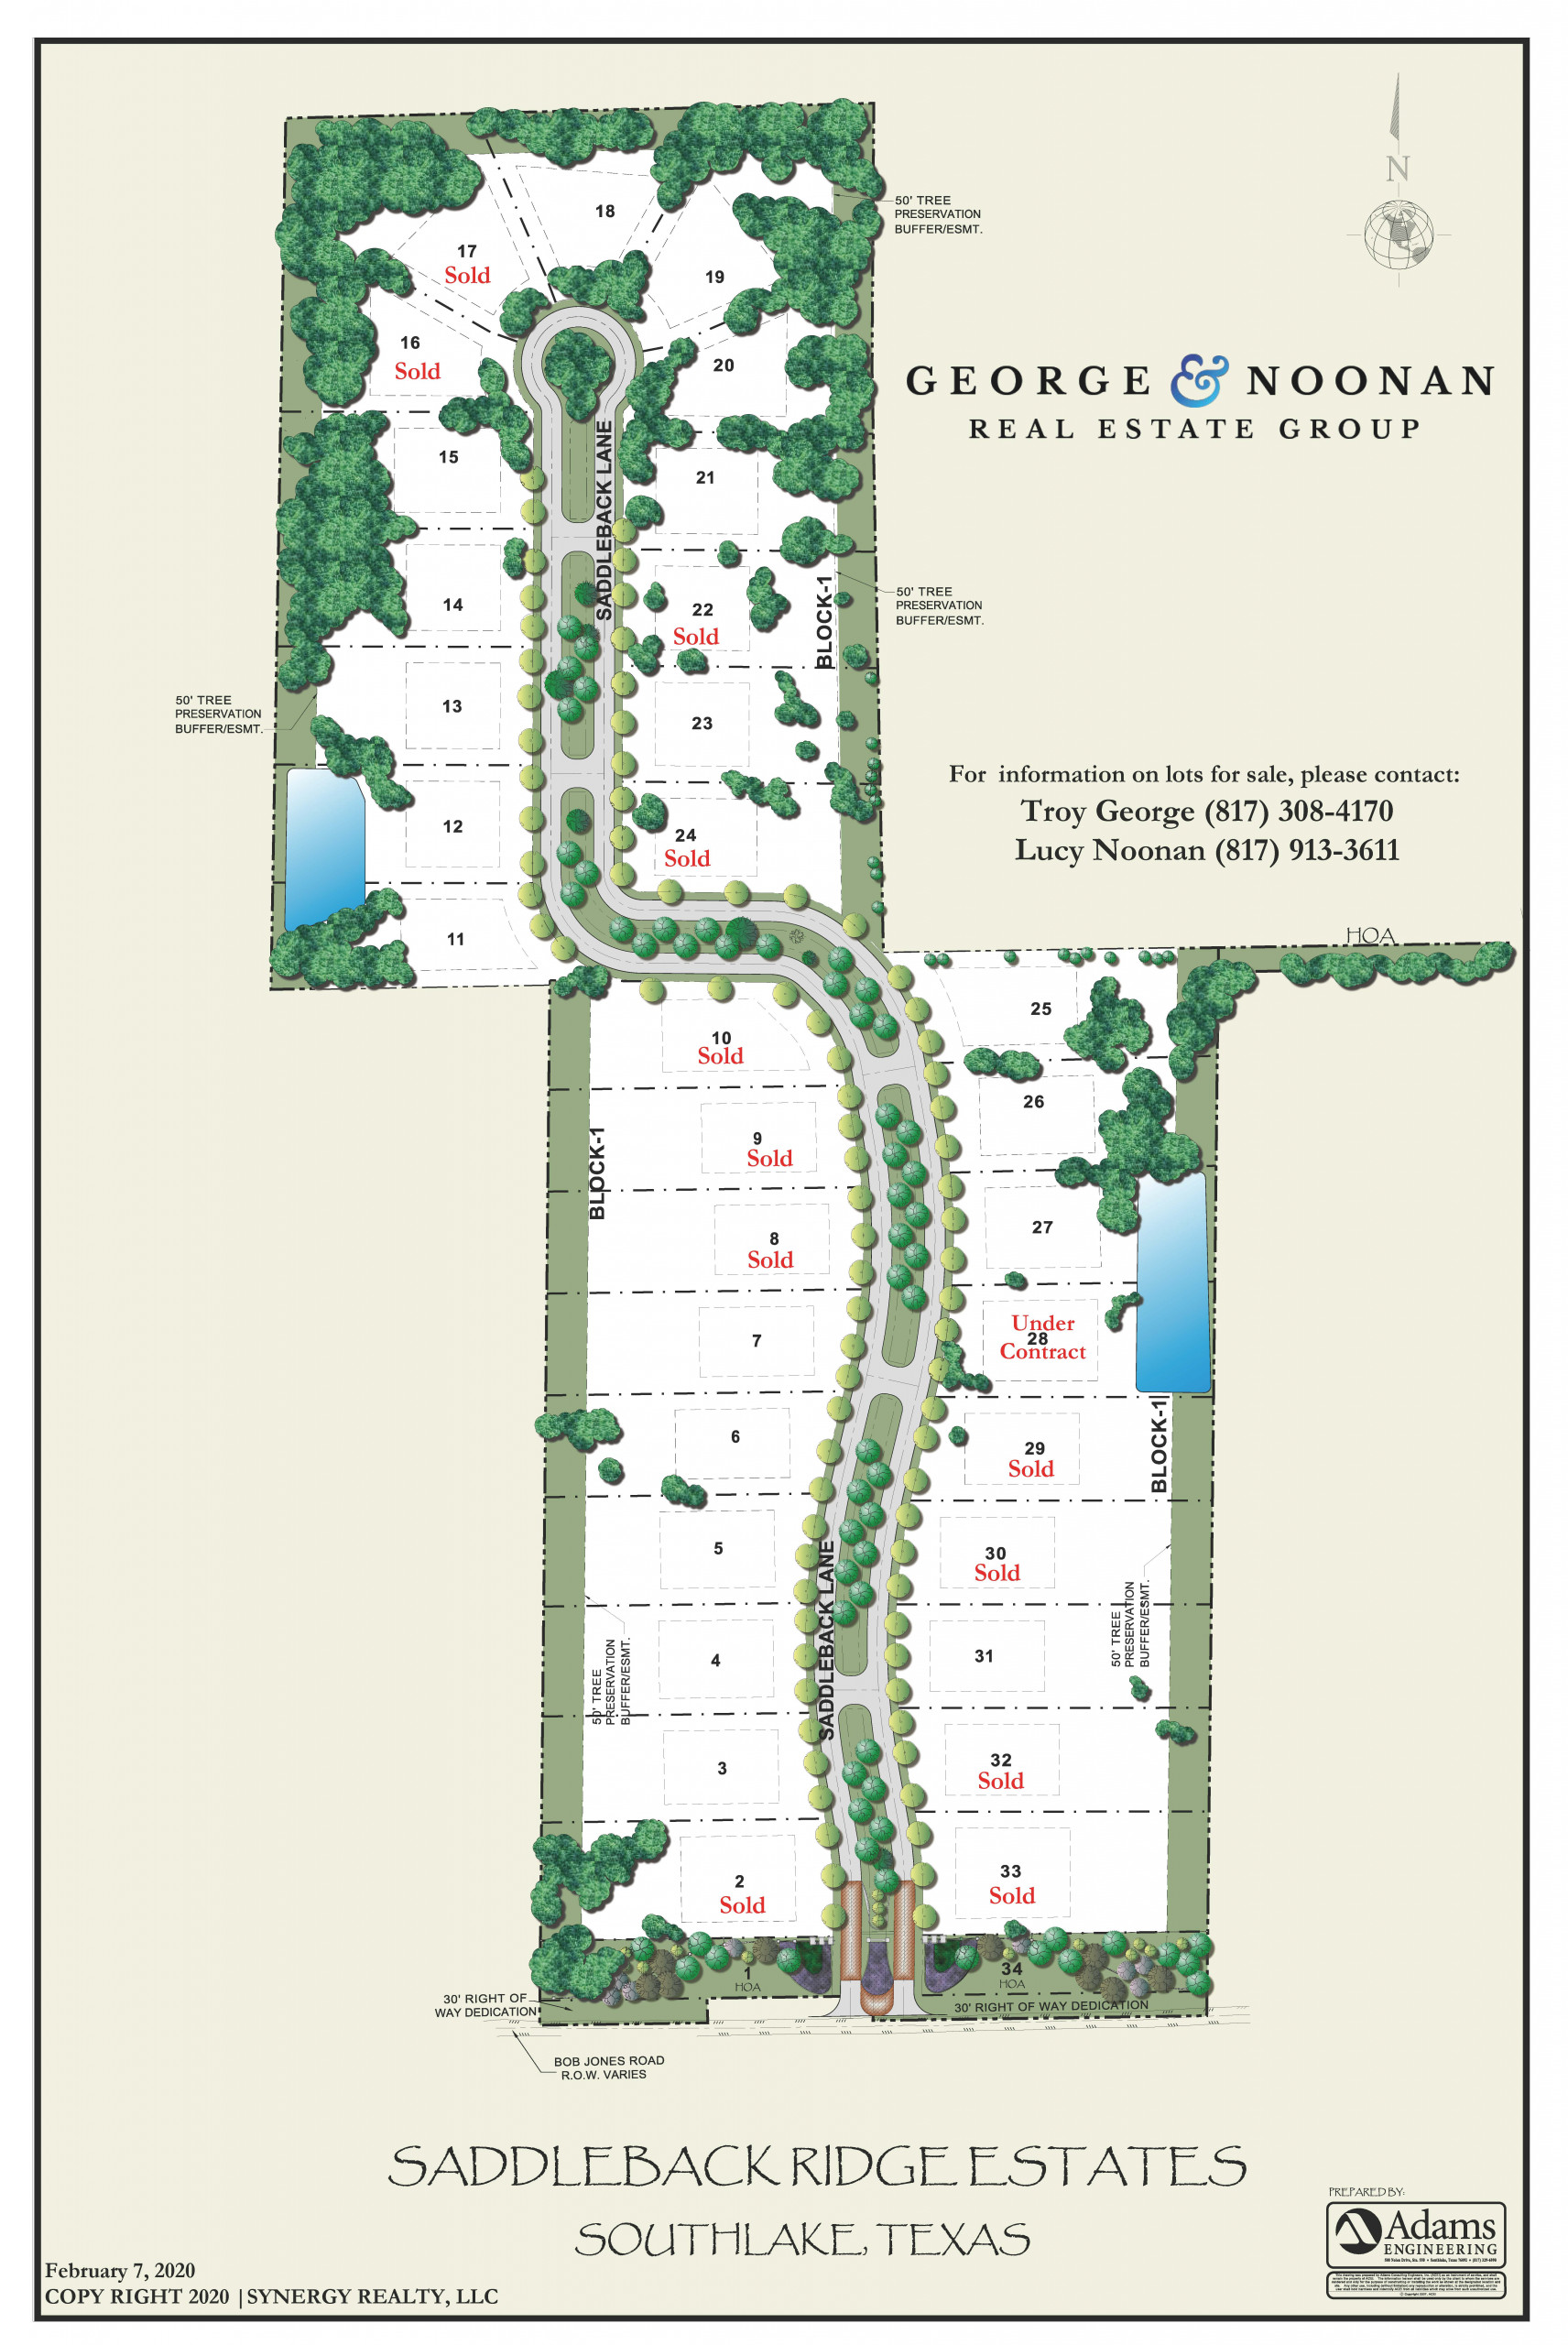 Saddleback Ridge Estates Map